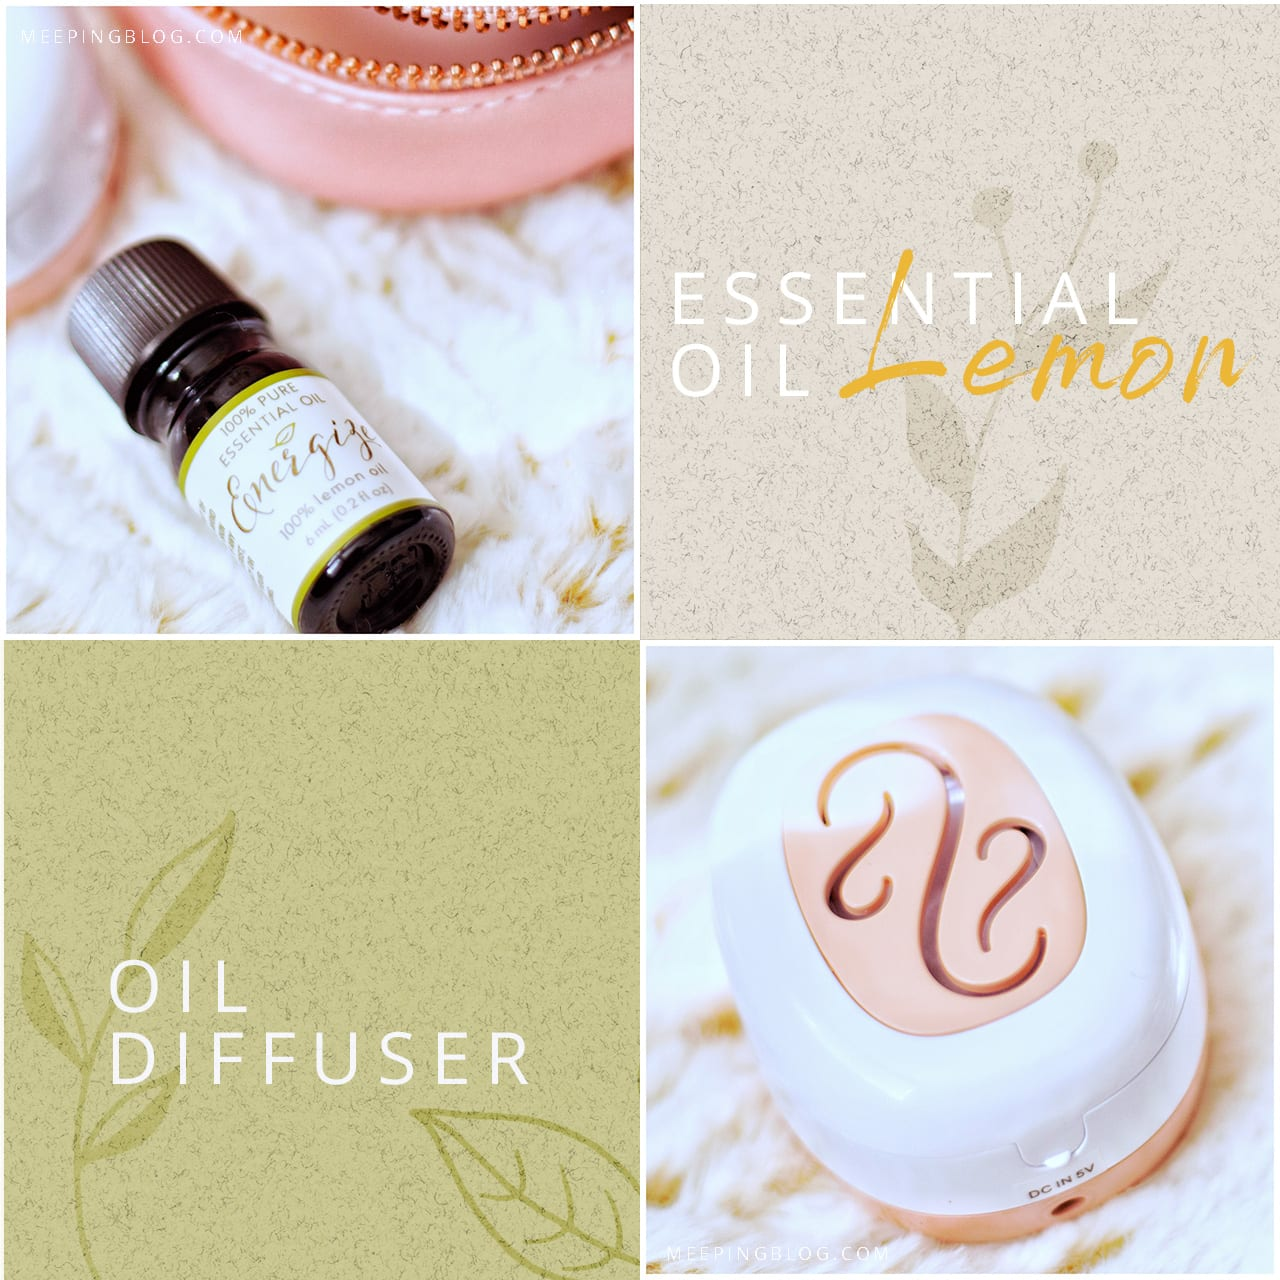 Laura Ashley Portable Essential Oil Diffuser Details